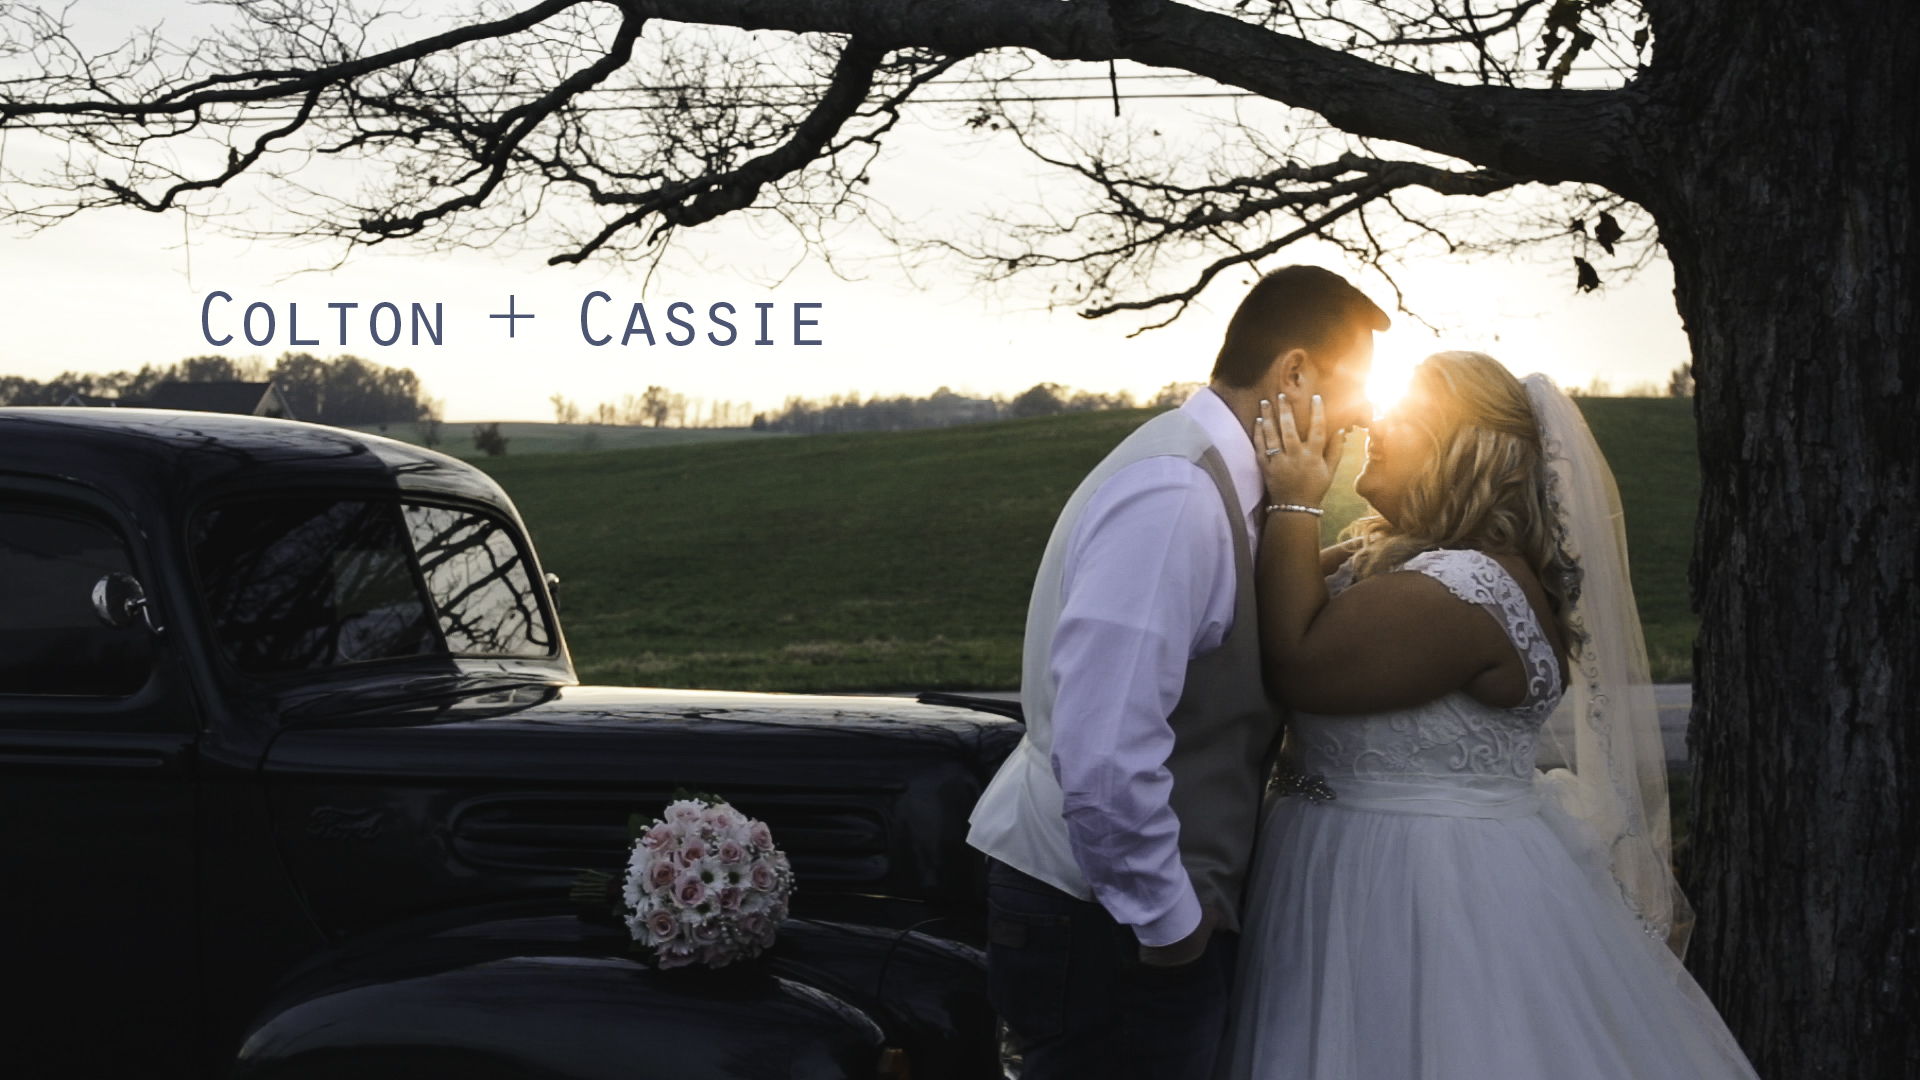 Colton + Cassie | Guston, Kentucky | Bruner's Farm & Winery